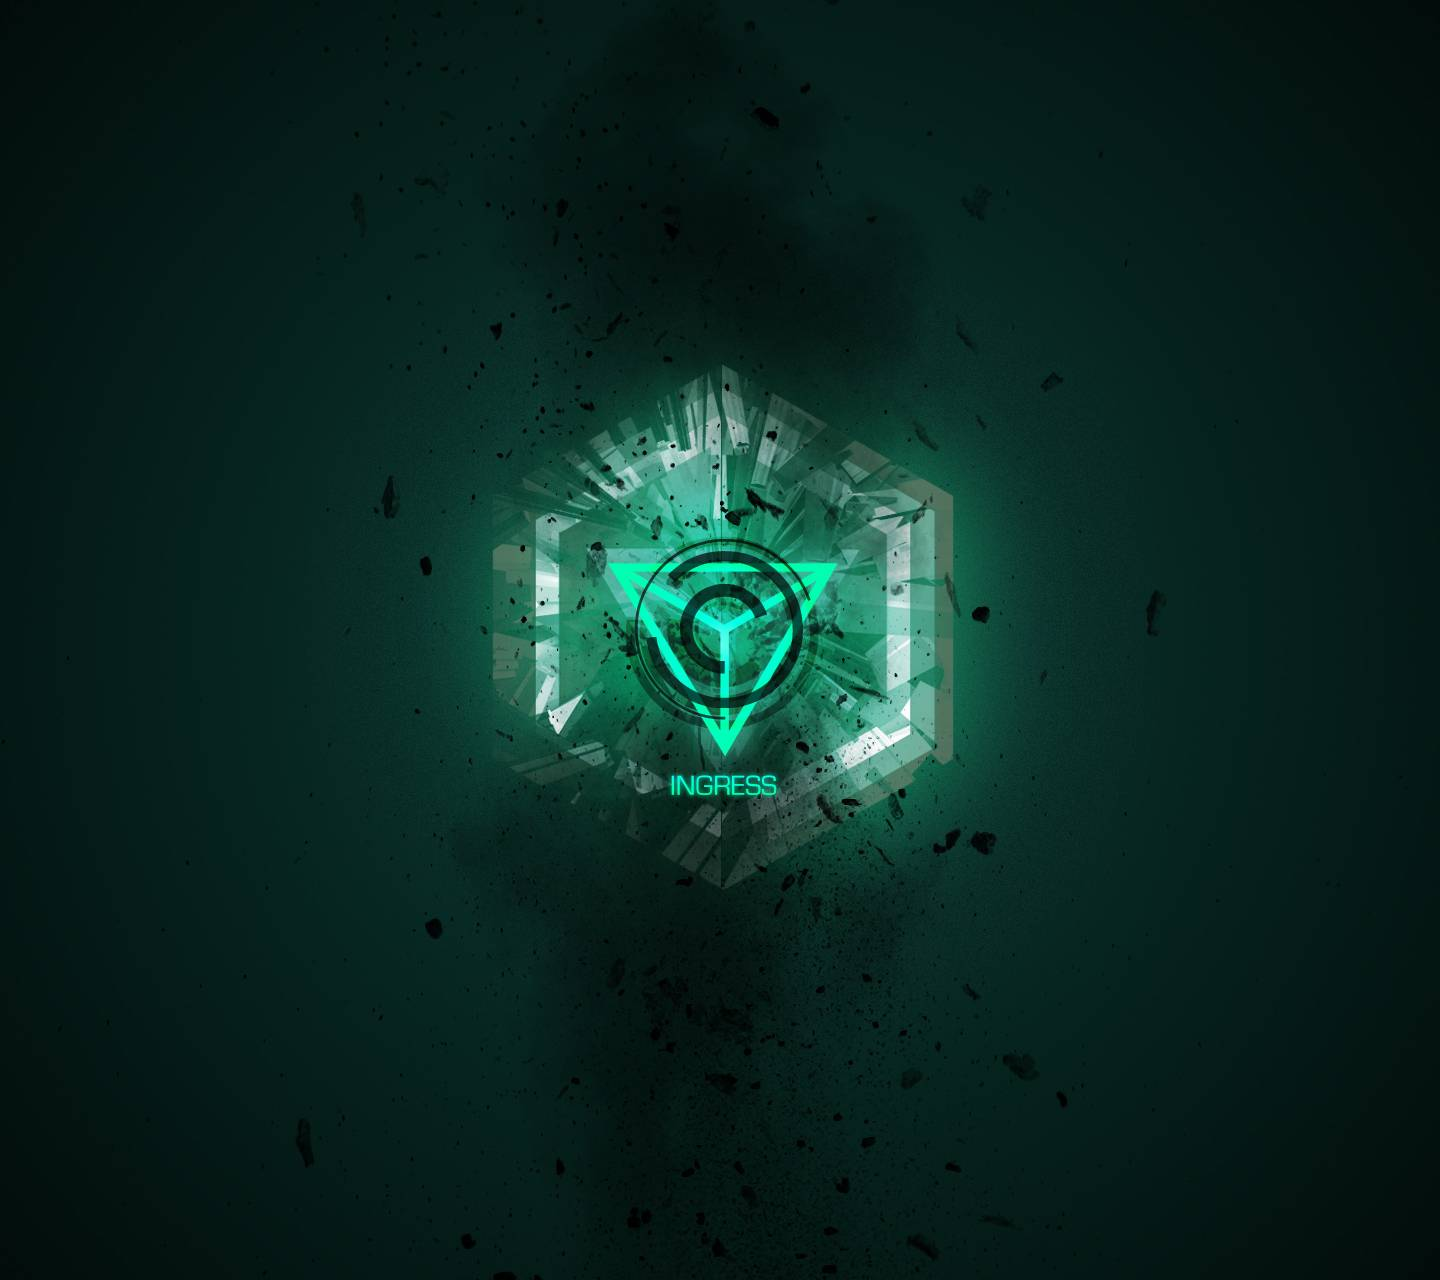 ingress google wallpaper by nos210885 d3 free on zedge